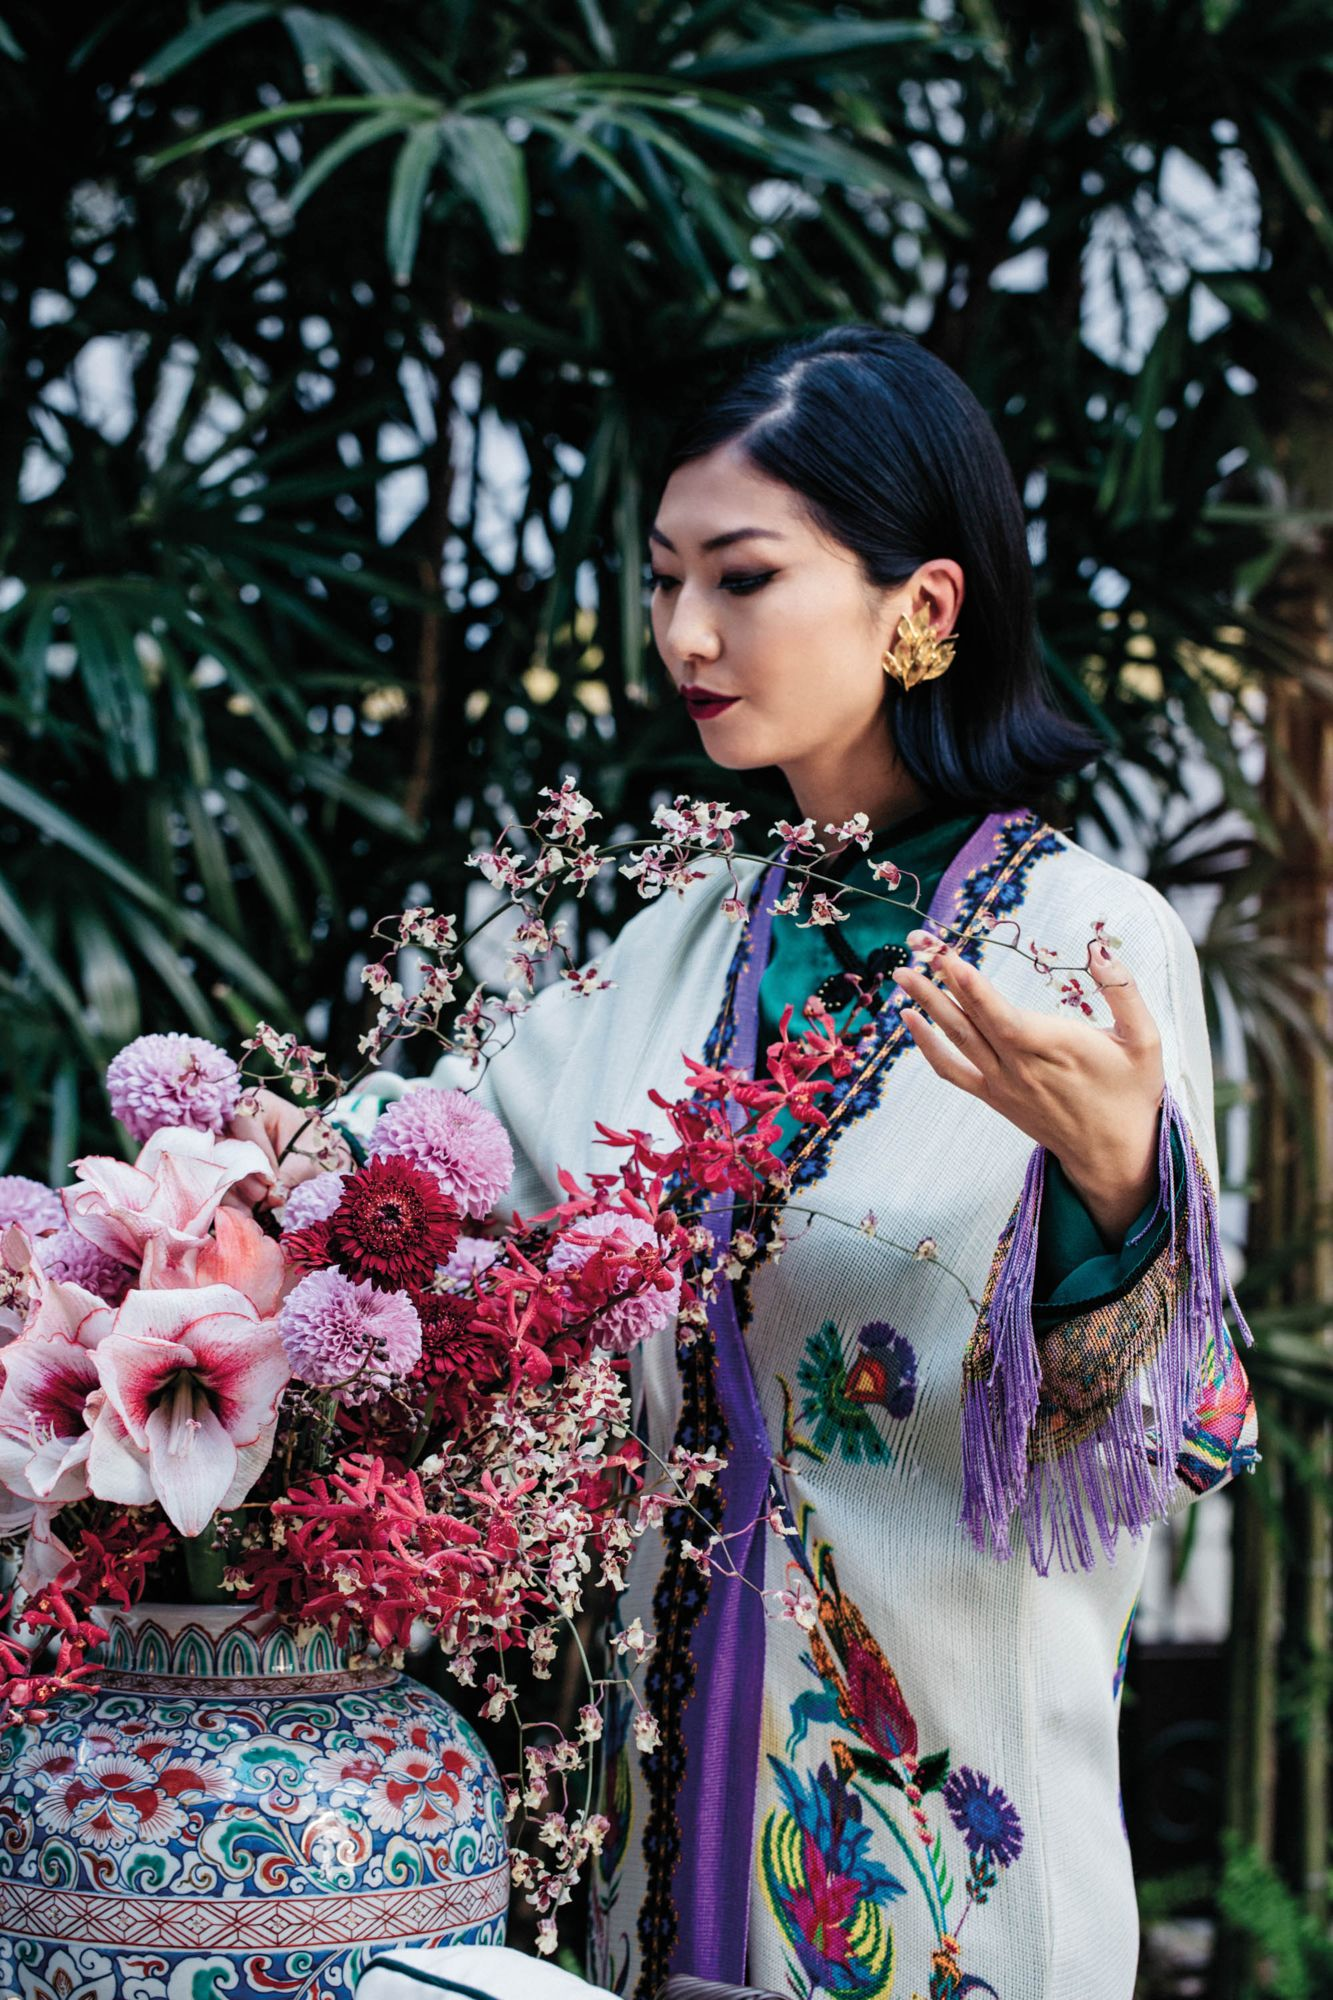 Laura Cheung for Tatler HK Chinese NY in Diana d'Orville printed silk suit